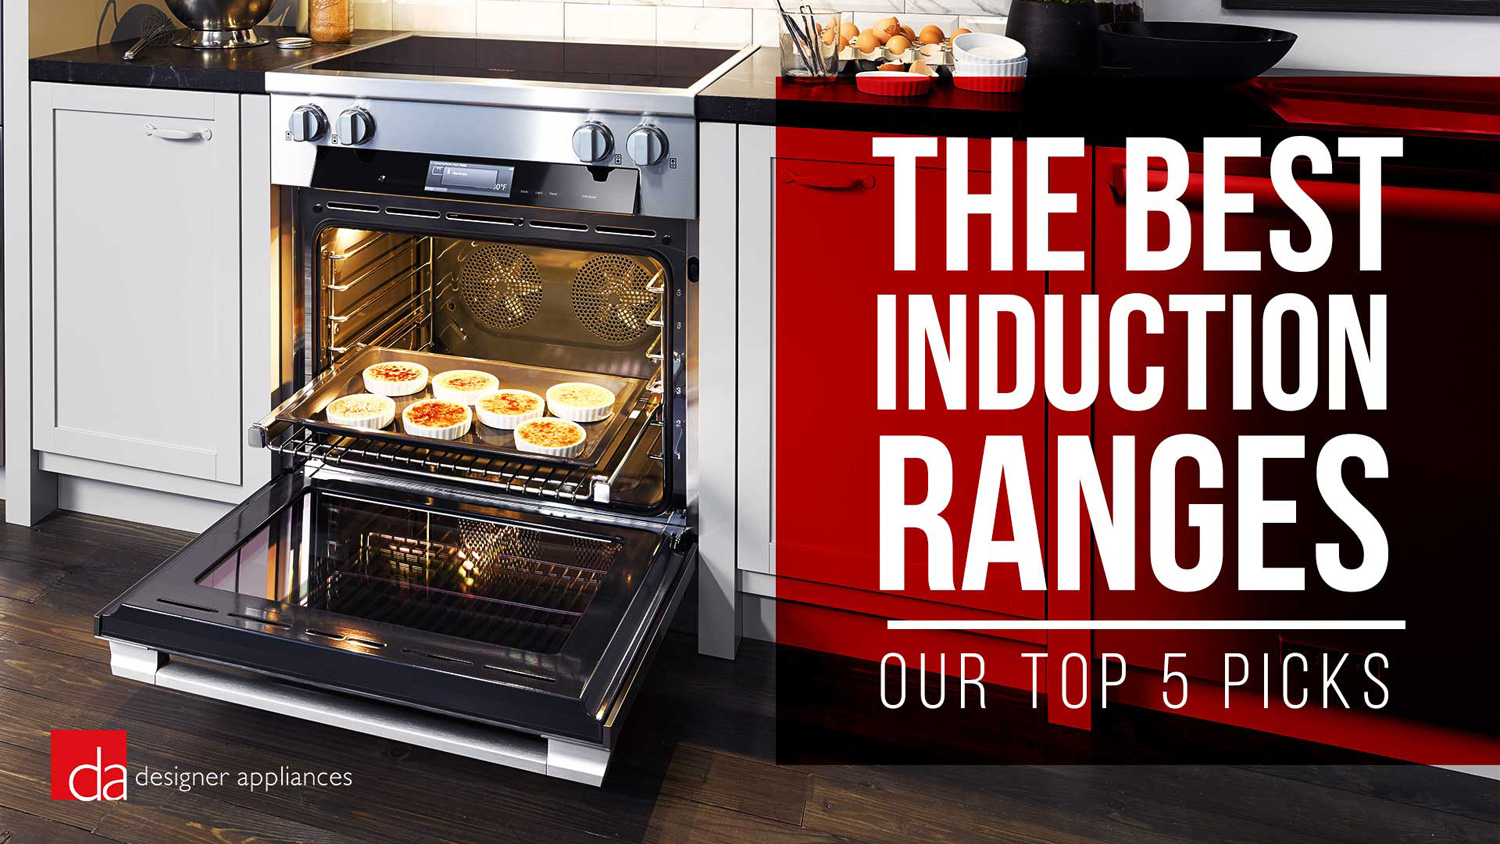 Best Rated Induction Ranges 2019 Best Induction Ranges of 2019   Our Top 5 Picks [REVIEW & VIDEO]